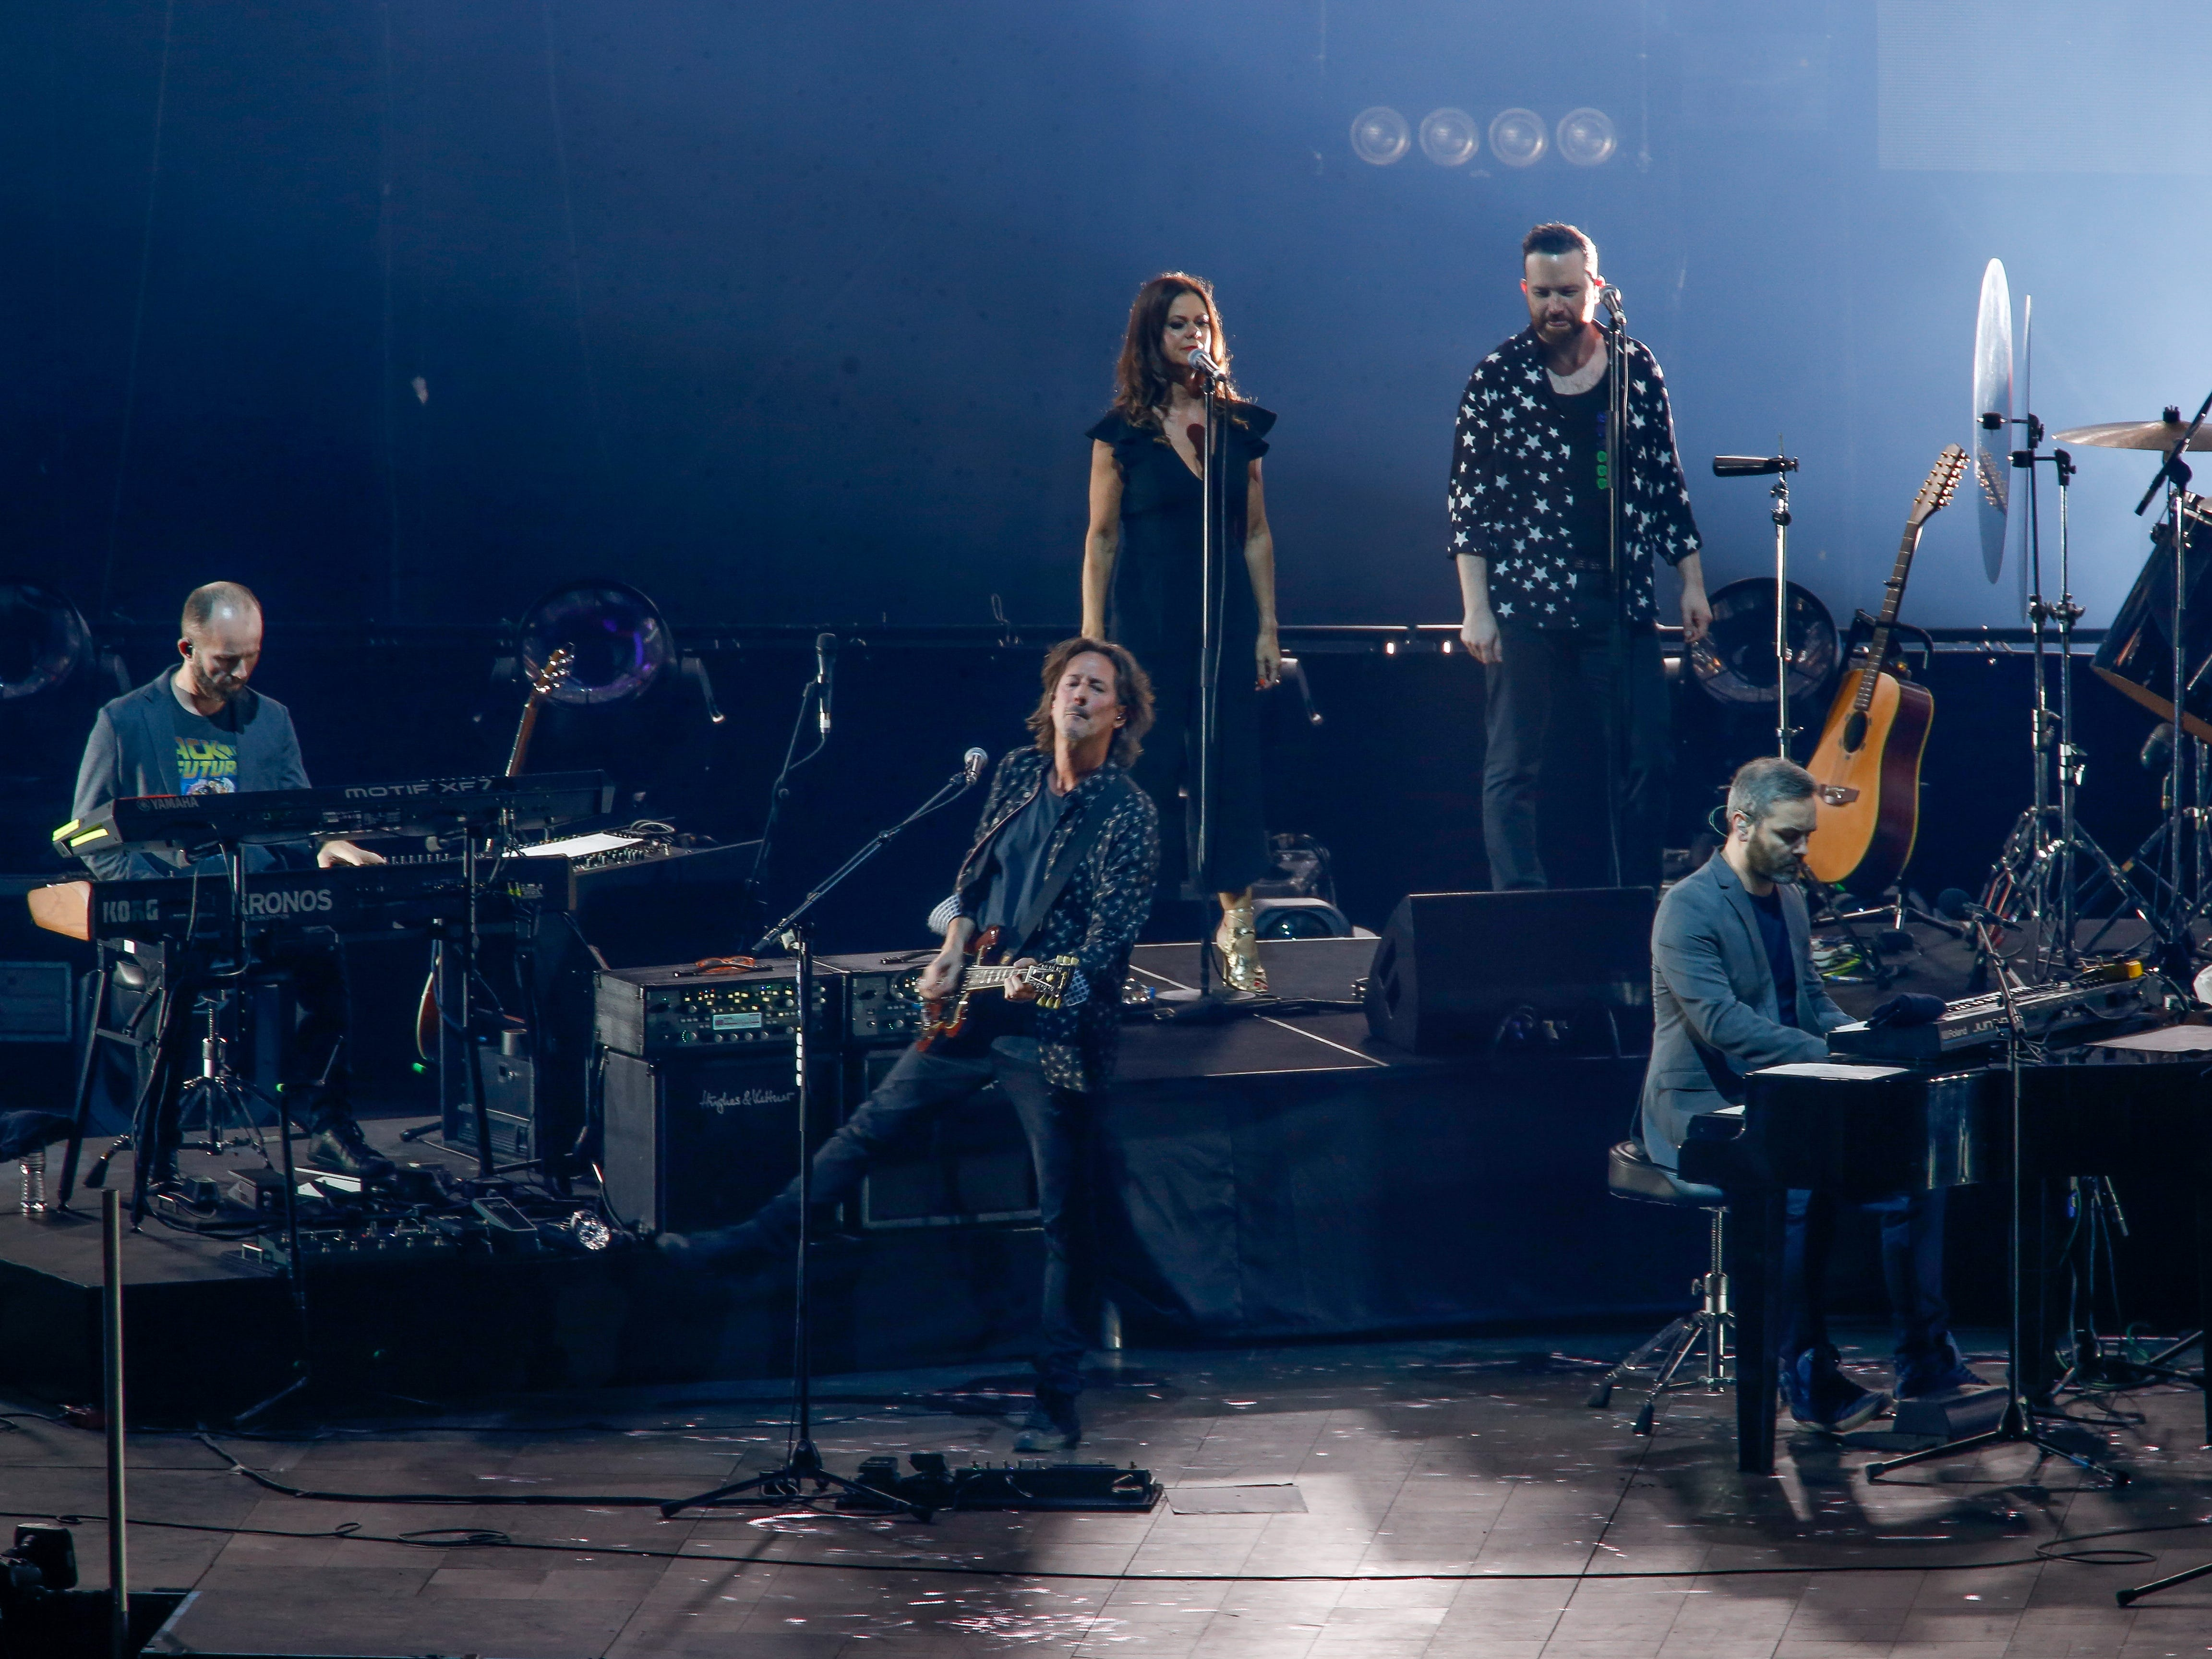 Keyboardist Joe Webb, left, guitarist Milton McDonald, center, and pianist Marcus Byrne, right, with backing vocalists Melanie Lewis McDonald and Iain Hornal. All are part of Jeff Lynne's ELO.